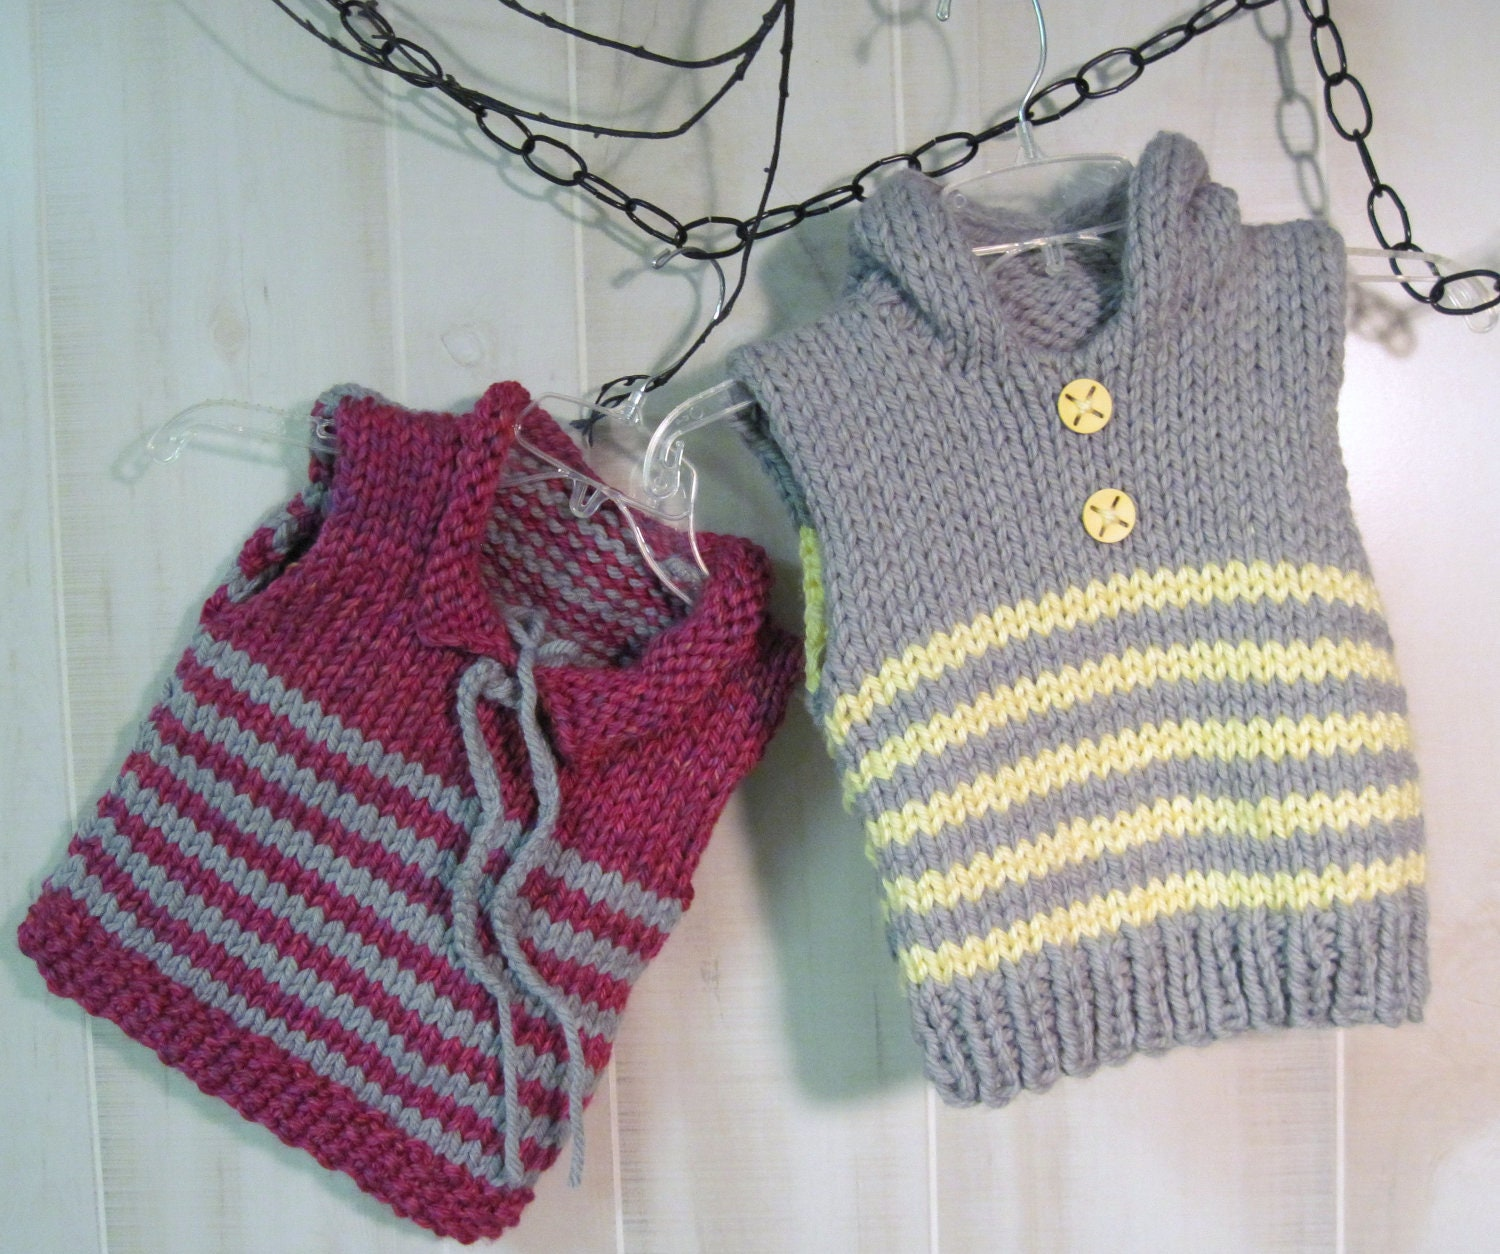 Vest Knitting Pattern For Children : Striped Toddler Vest with Hoodie in Bulky Knit Pattern Child